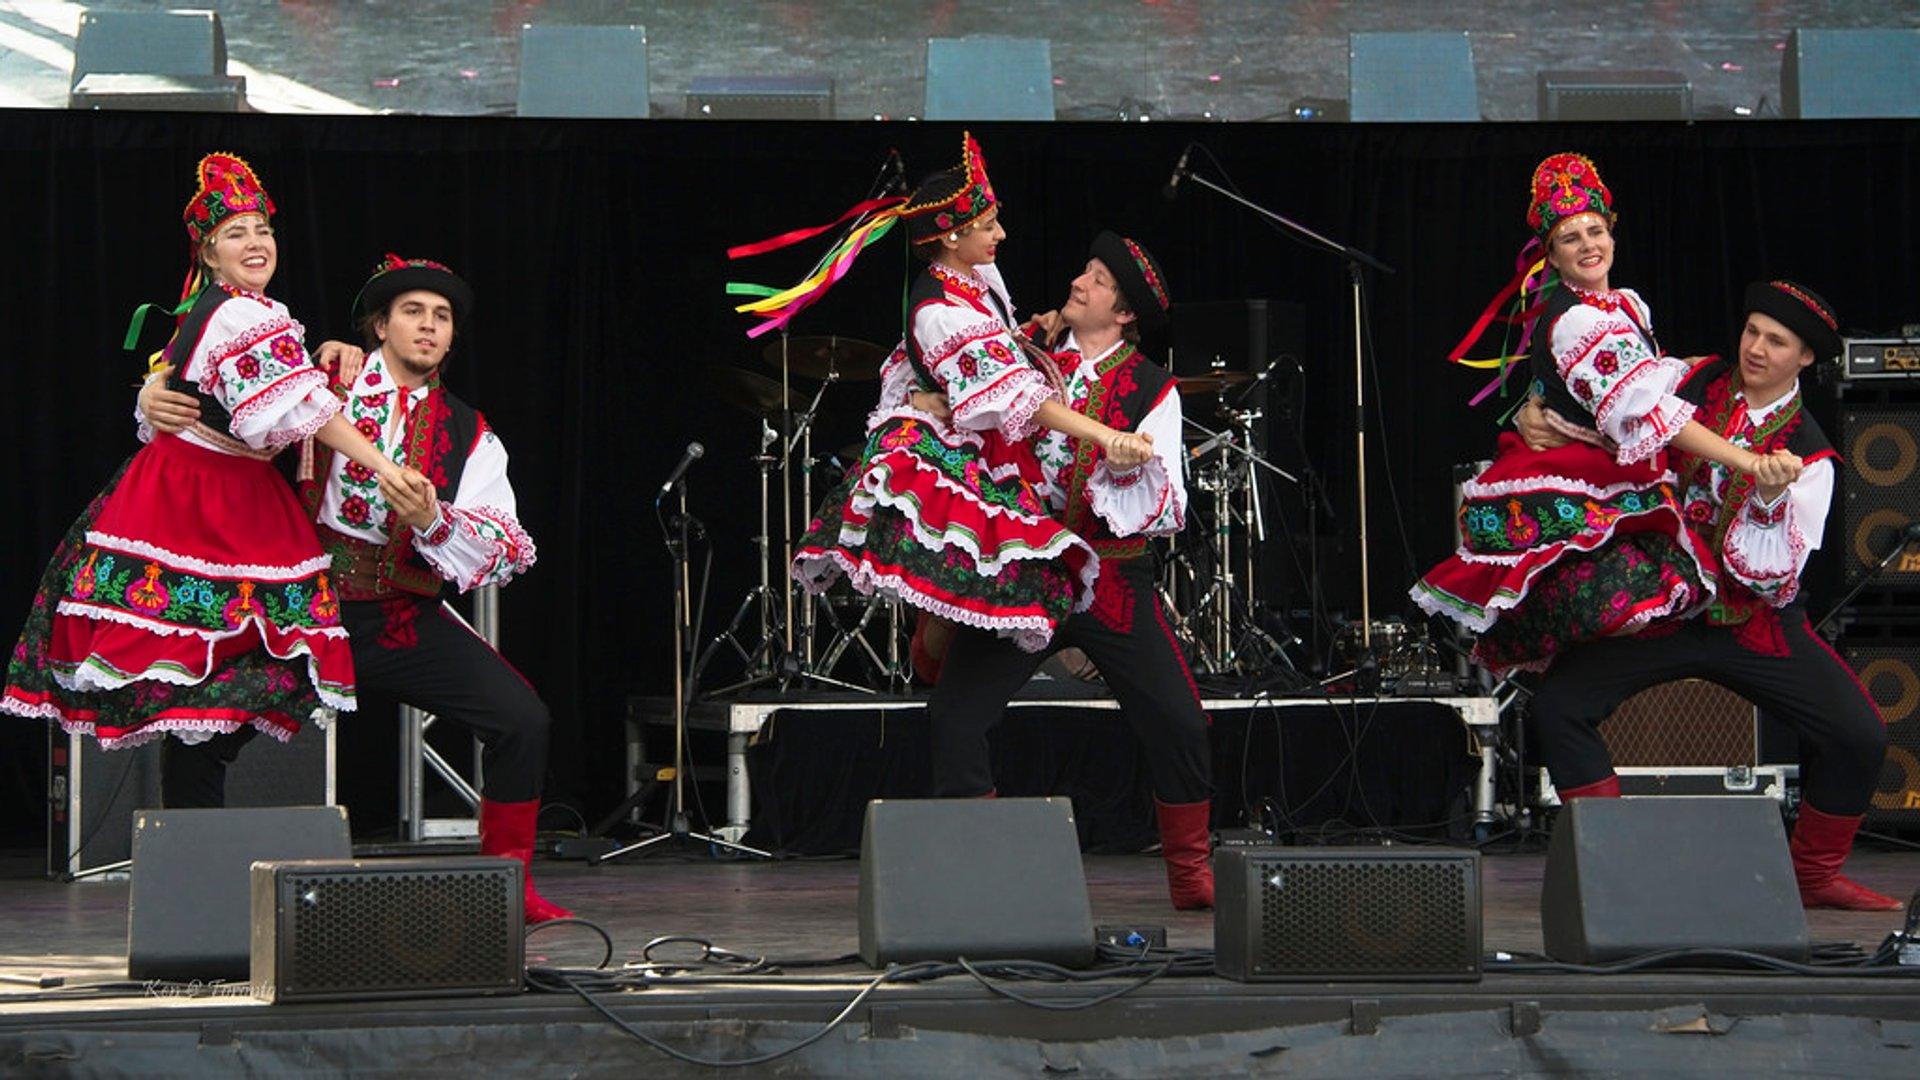 Toronto Ukrainian Festival in Toronto - Best Season 2020